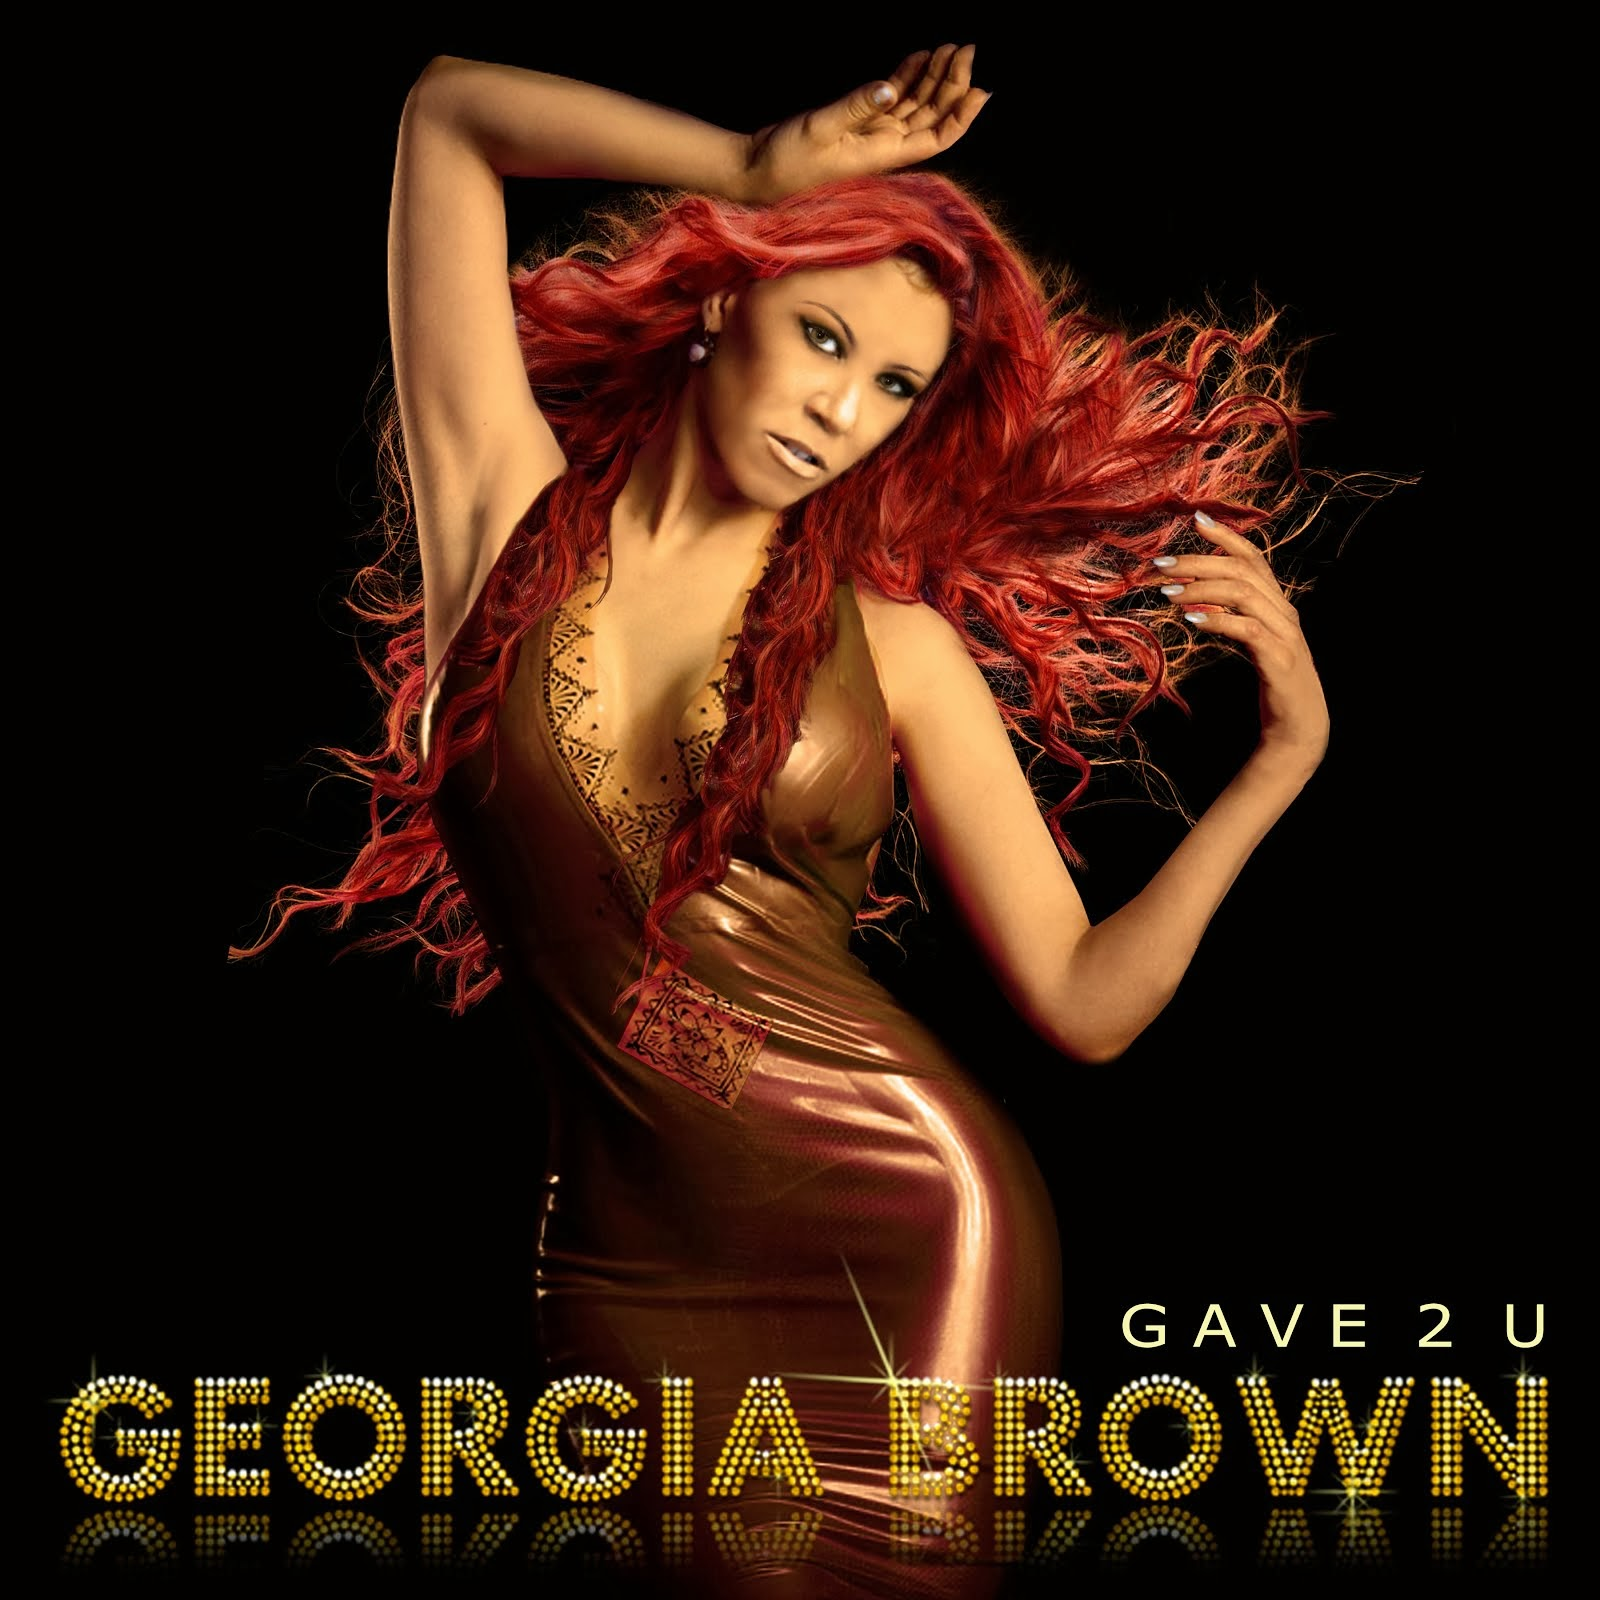 GEORGIA BROWN - GAVE 2 U (FREE DOWNLOAD)